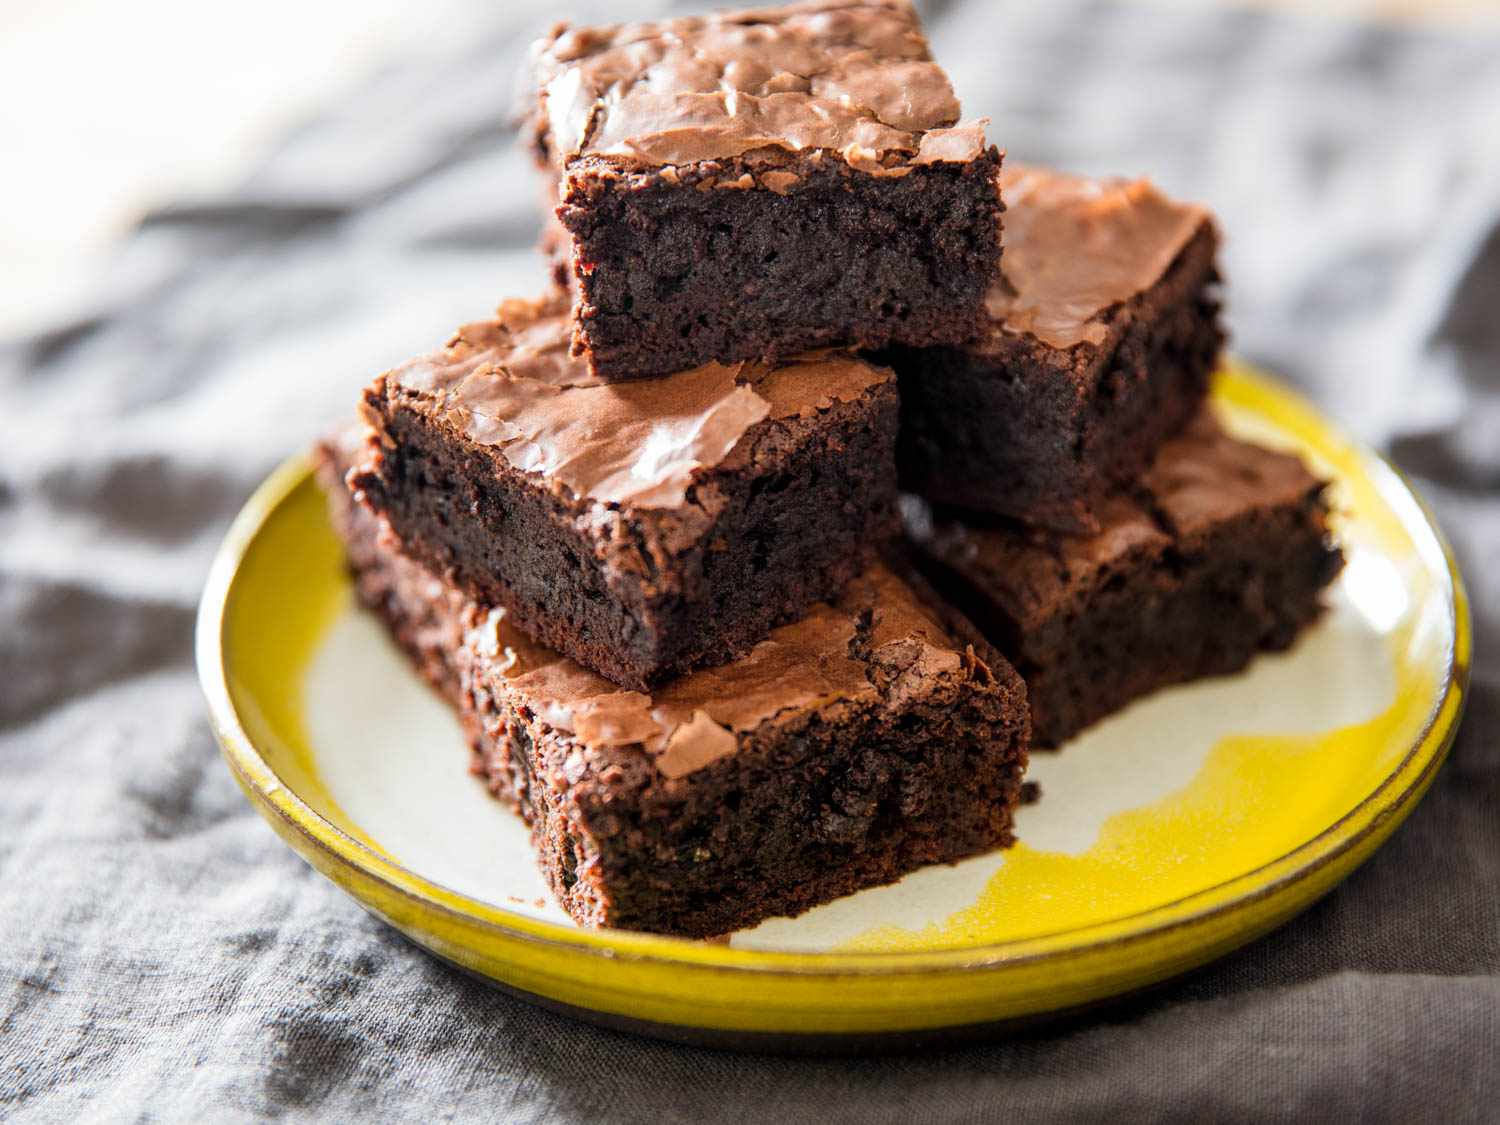 A stack of glossy chocolate fudge brownies on a plate.